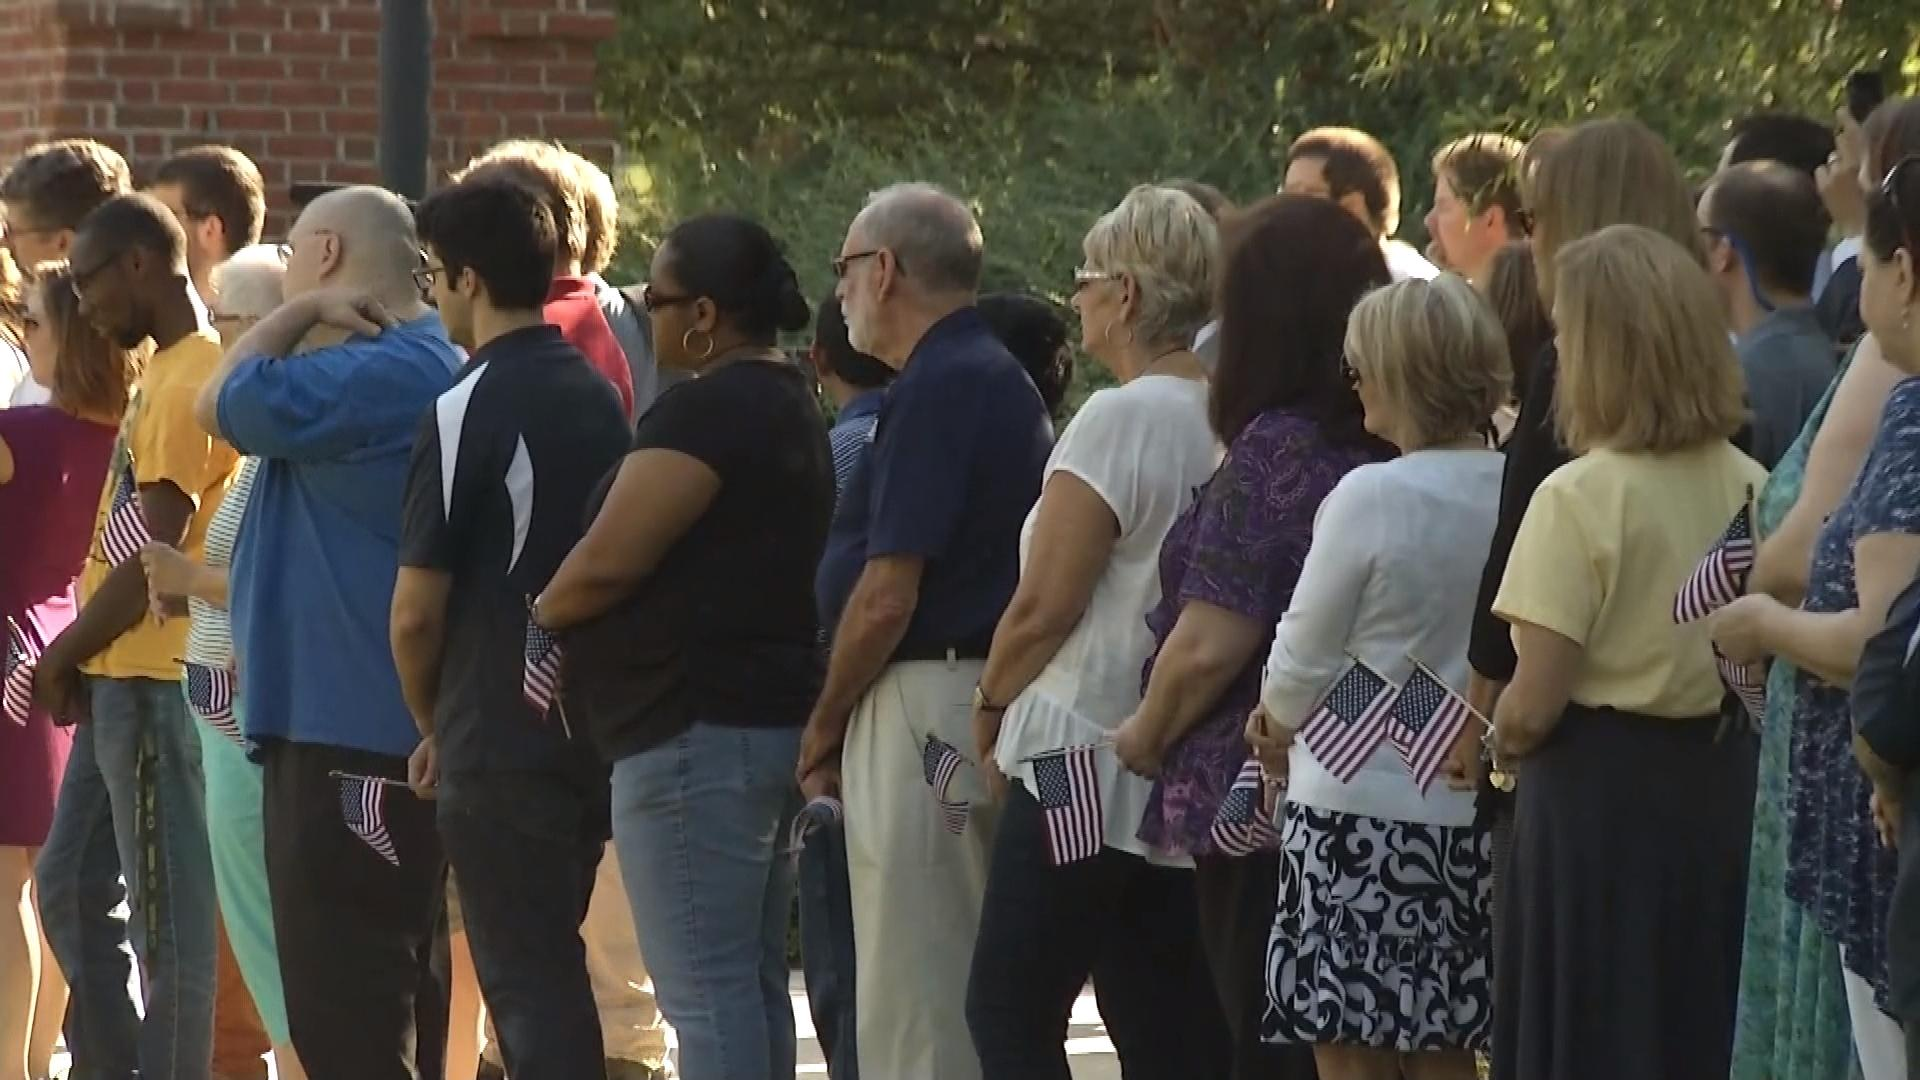 Tennessee vigil emphasizes focus on victims